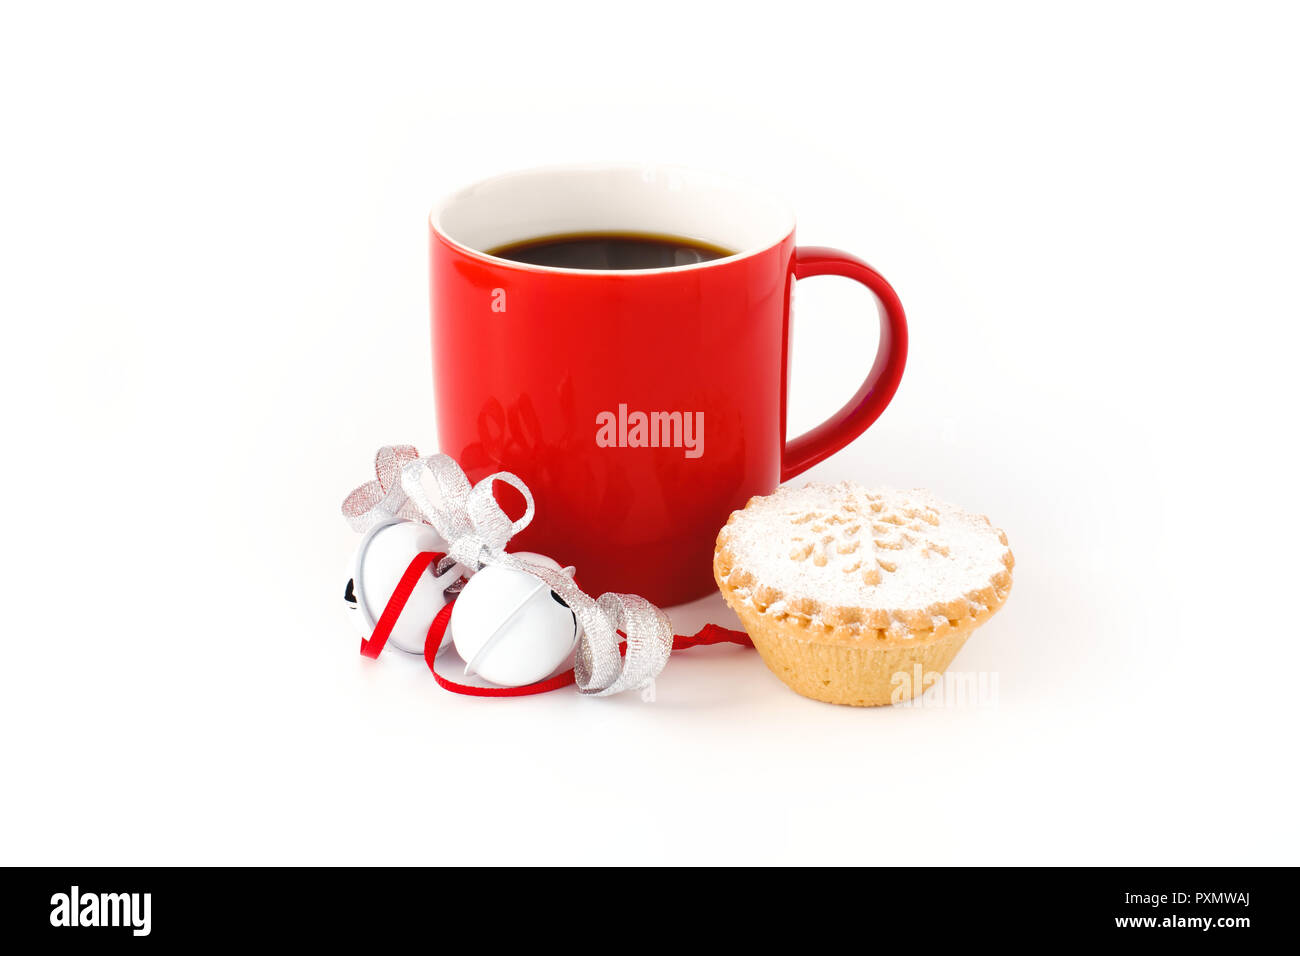 Red mug filled with black coffee ,decorated with white jingle bells, silver metallic ribbon, and a mince pie on white background. - Stock Image